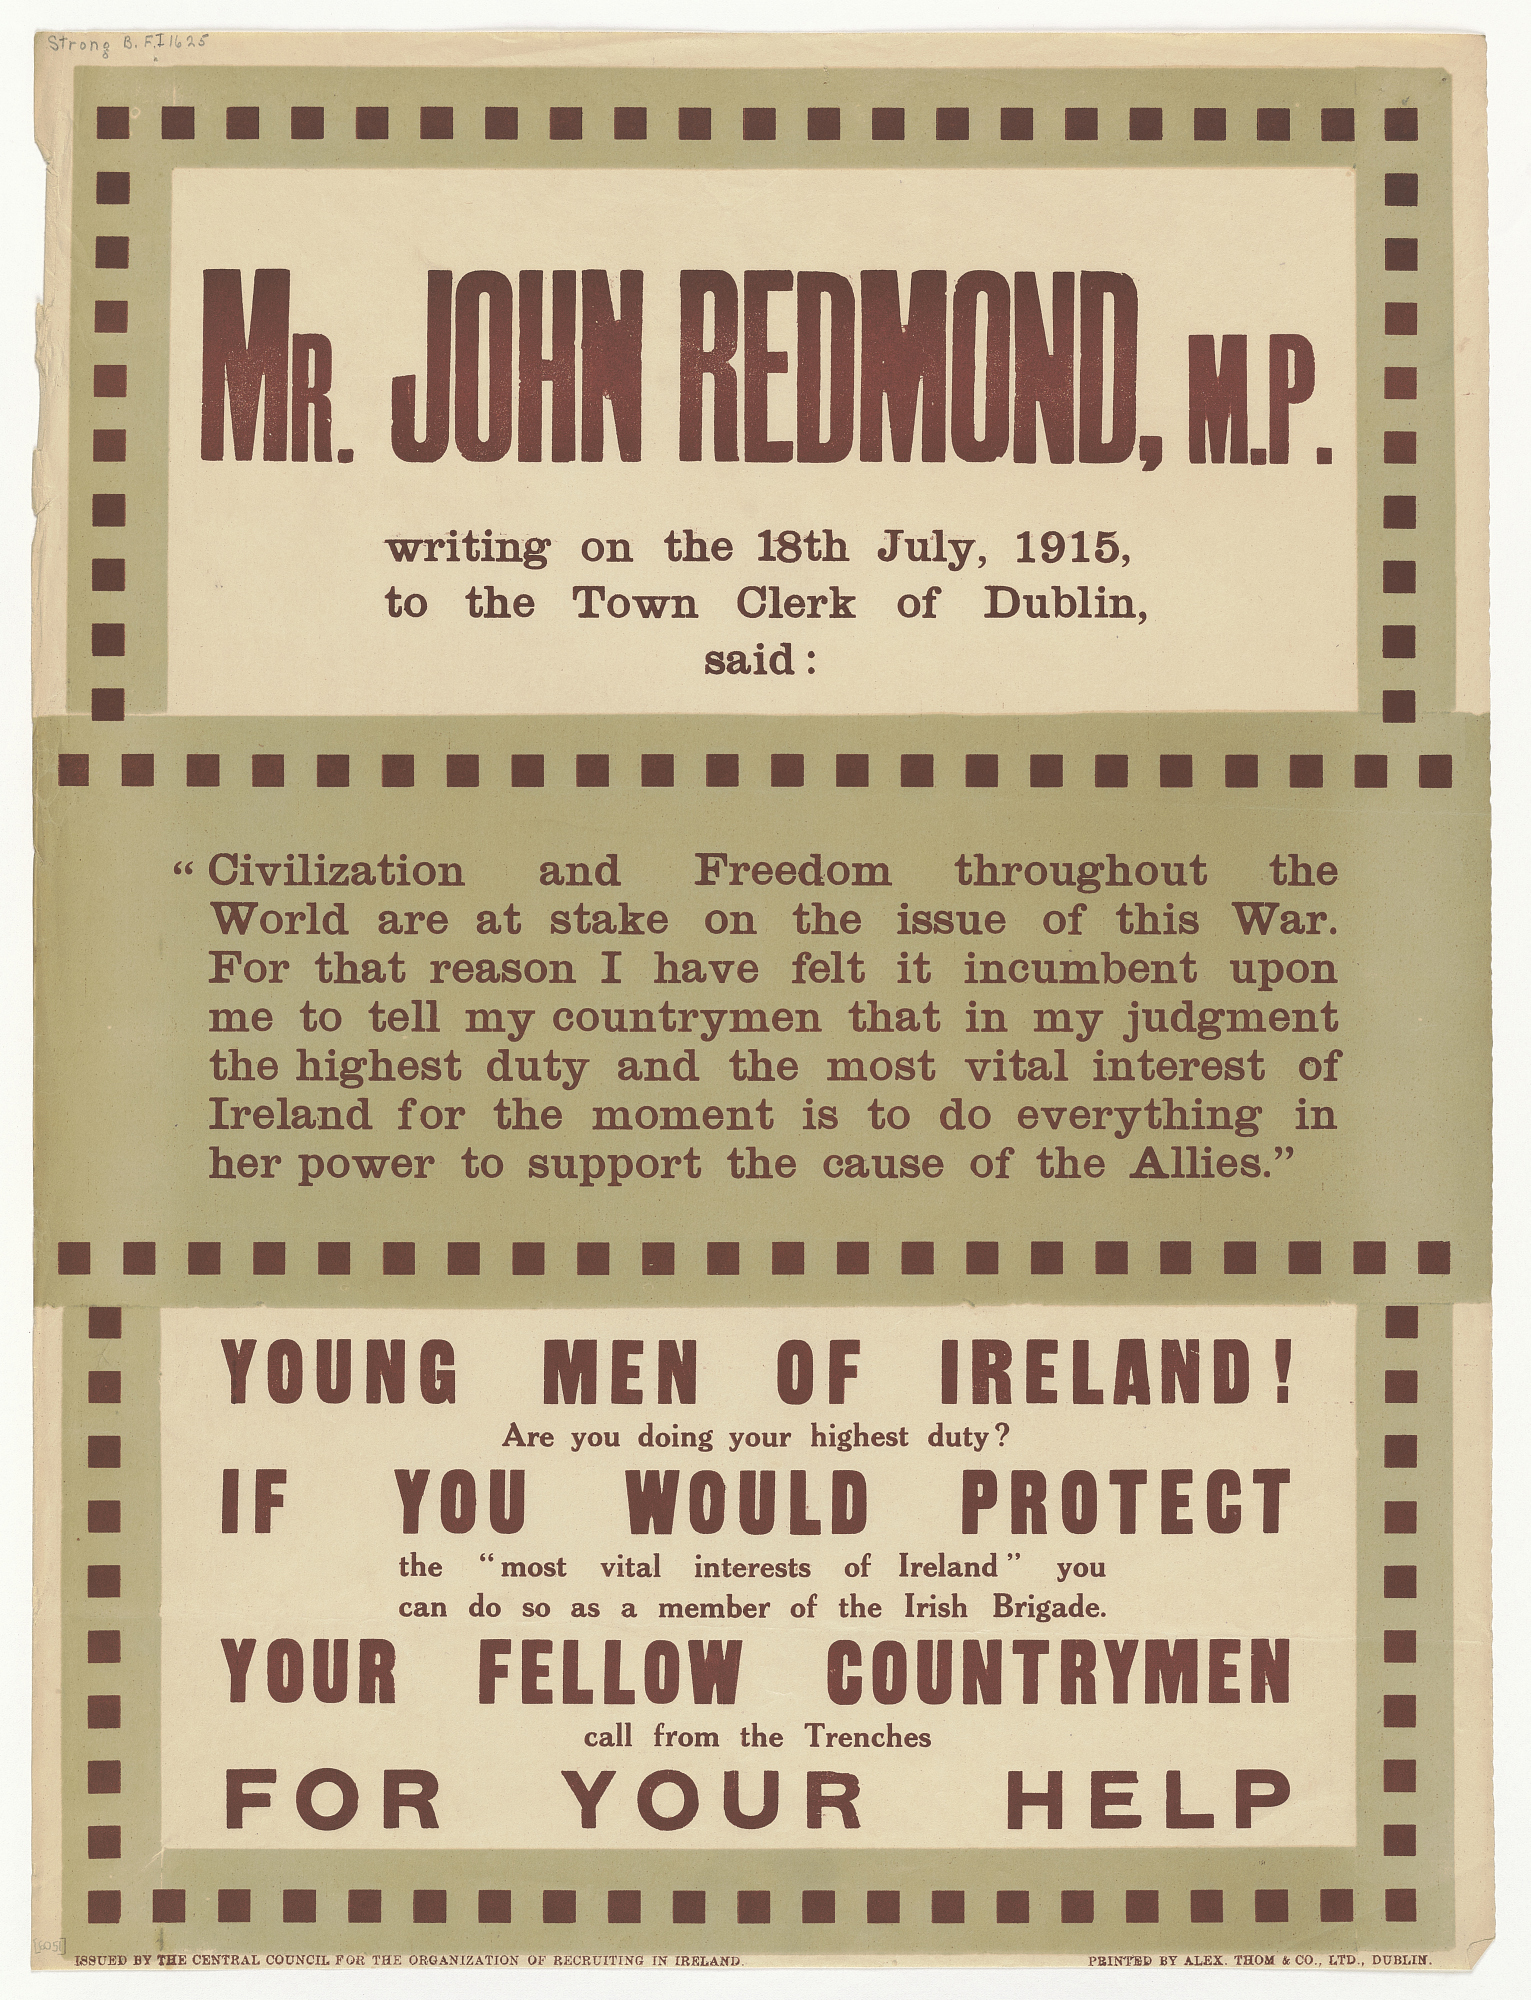 Mr. John Redmond, M.P. Writing on the 18th of July, 1915 ... Your Fellow Countrymen Call From the Trenches for Your Help. Central Council for the Organisation of Recruiting in Ireland.